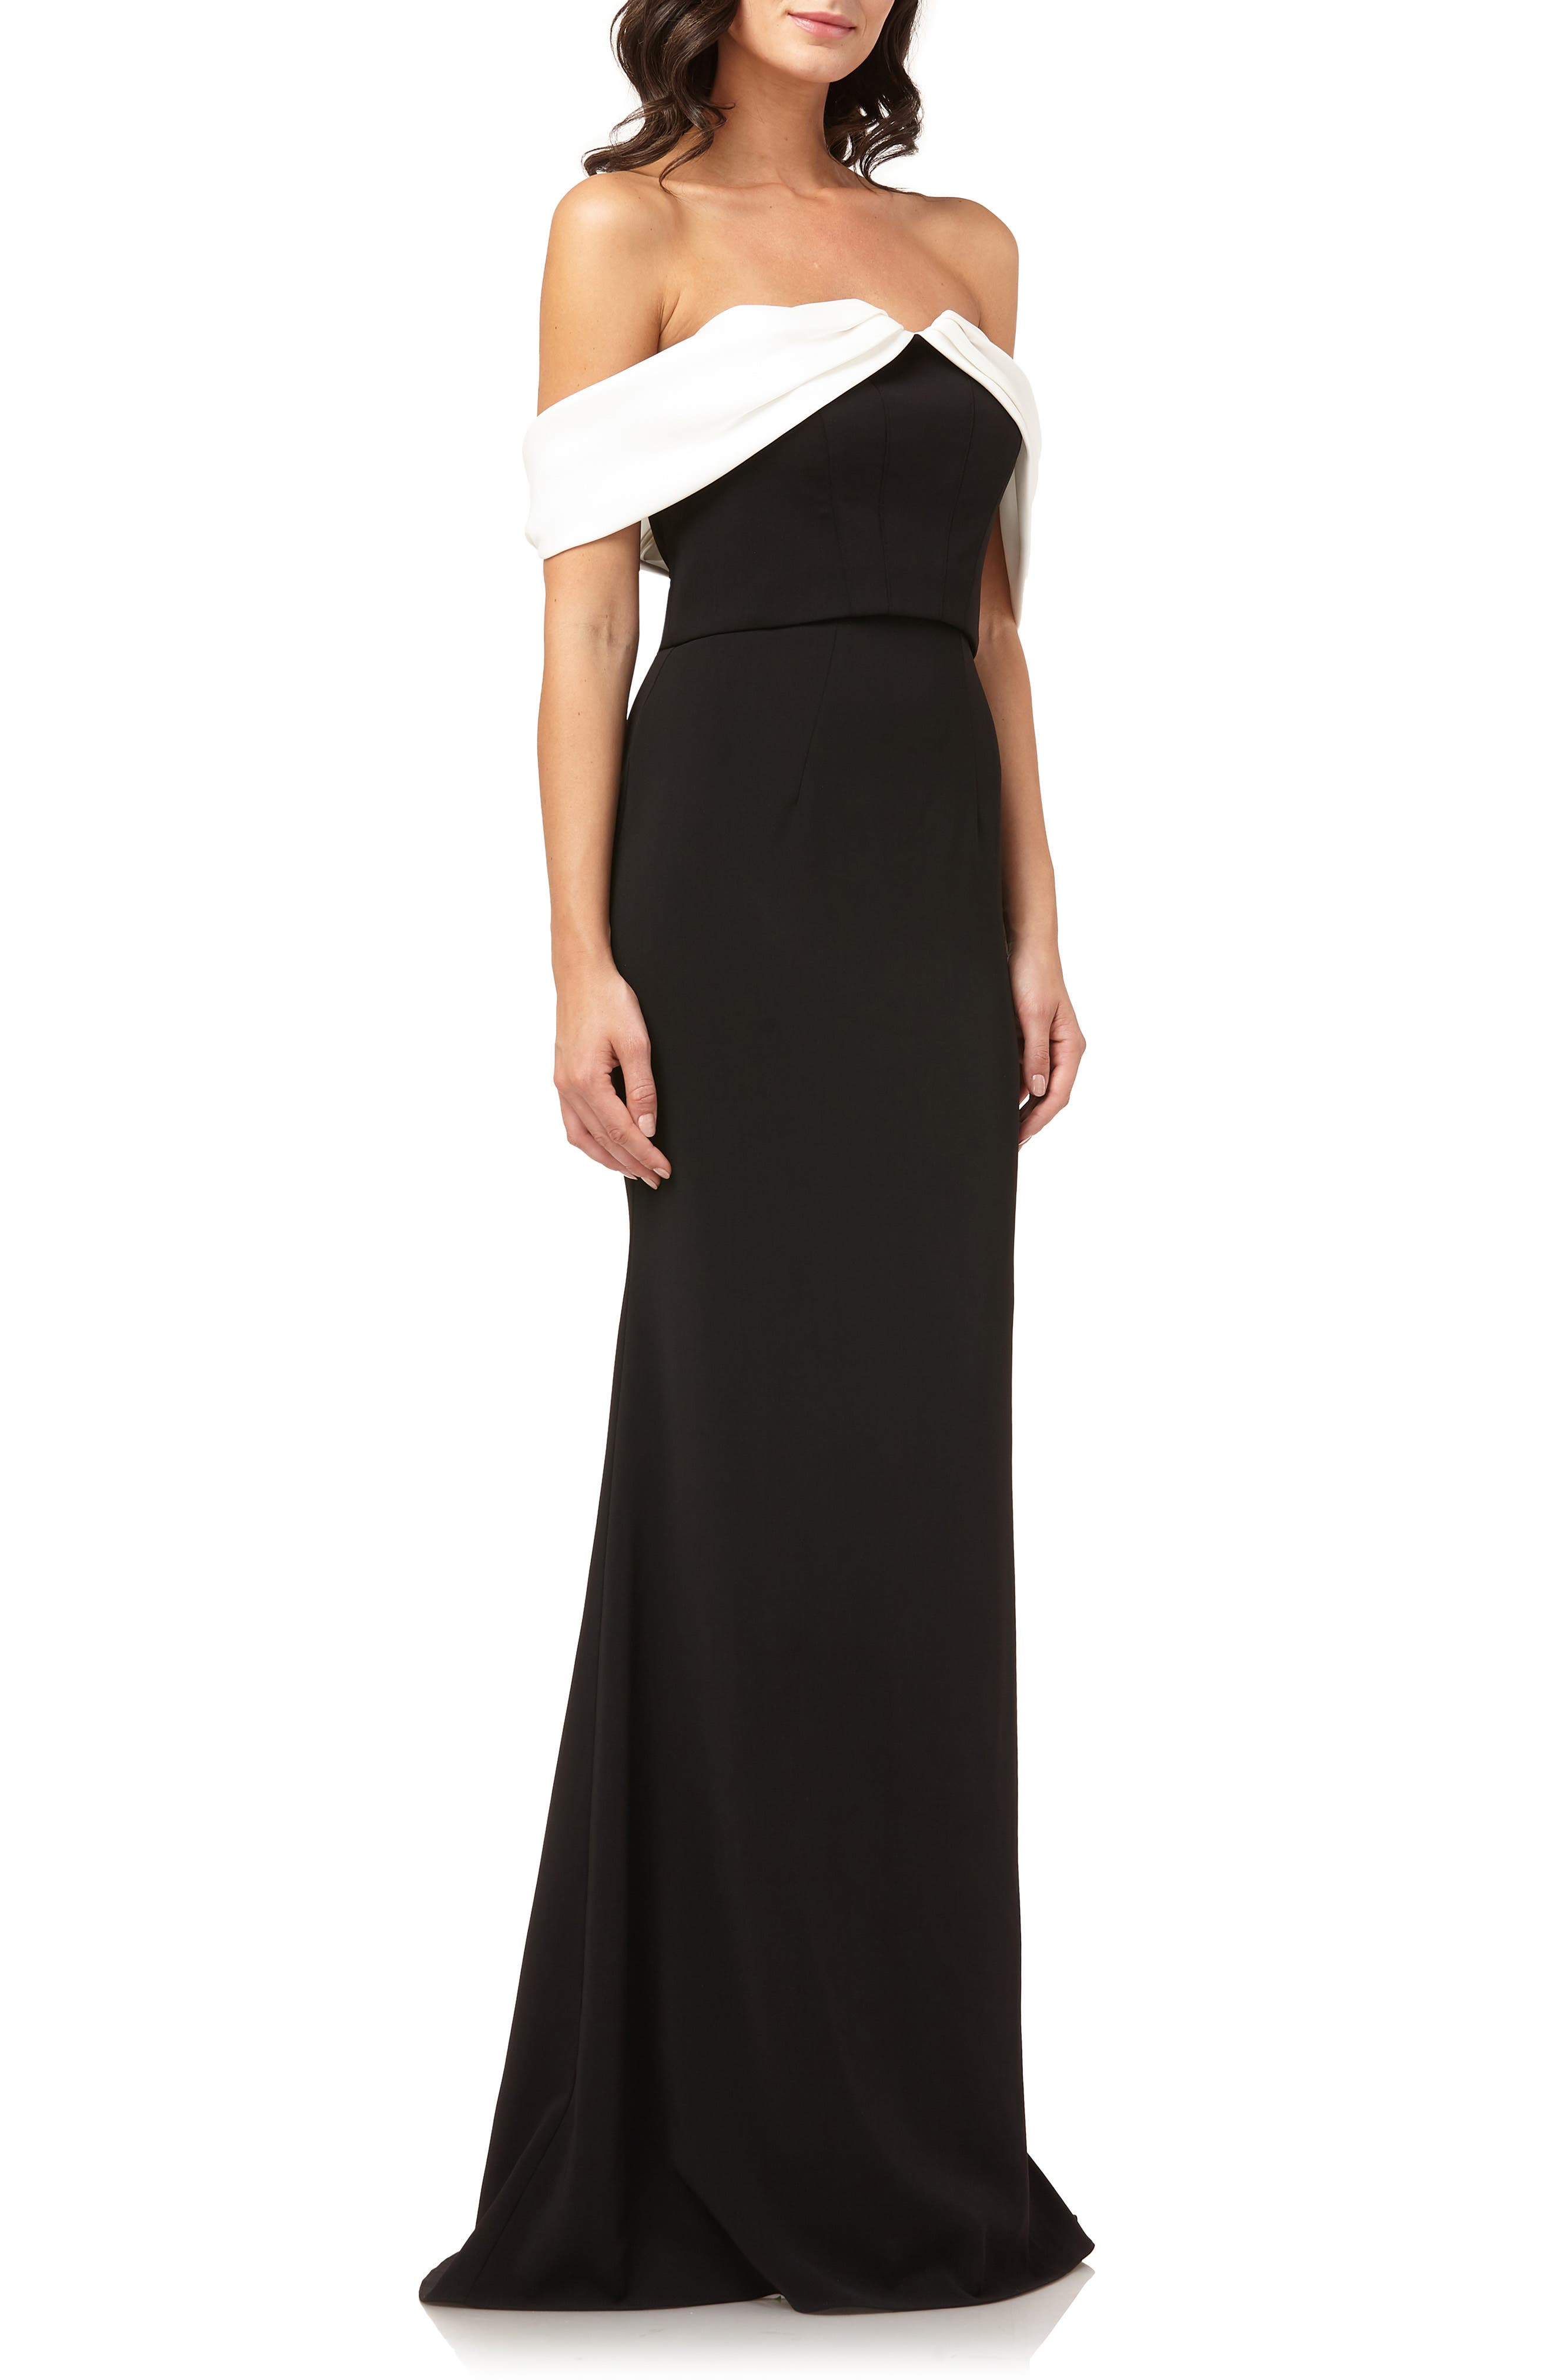 Carmen Marc Valvo Infusion Strapless Mermaid Gown, Black